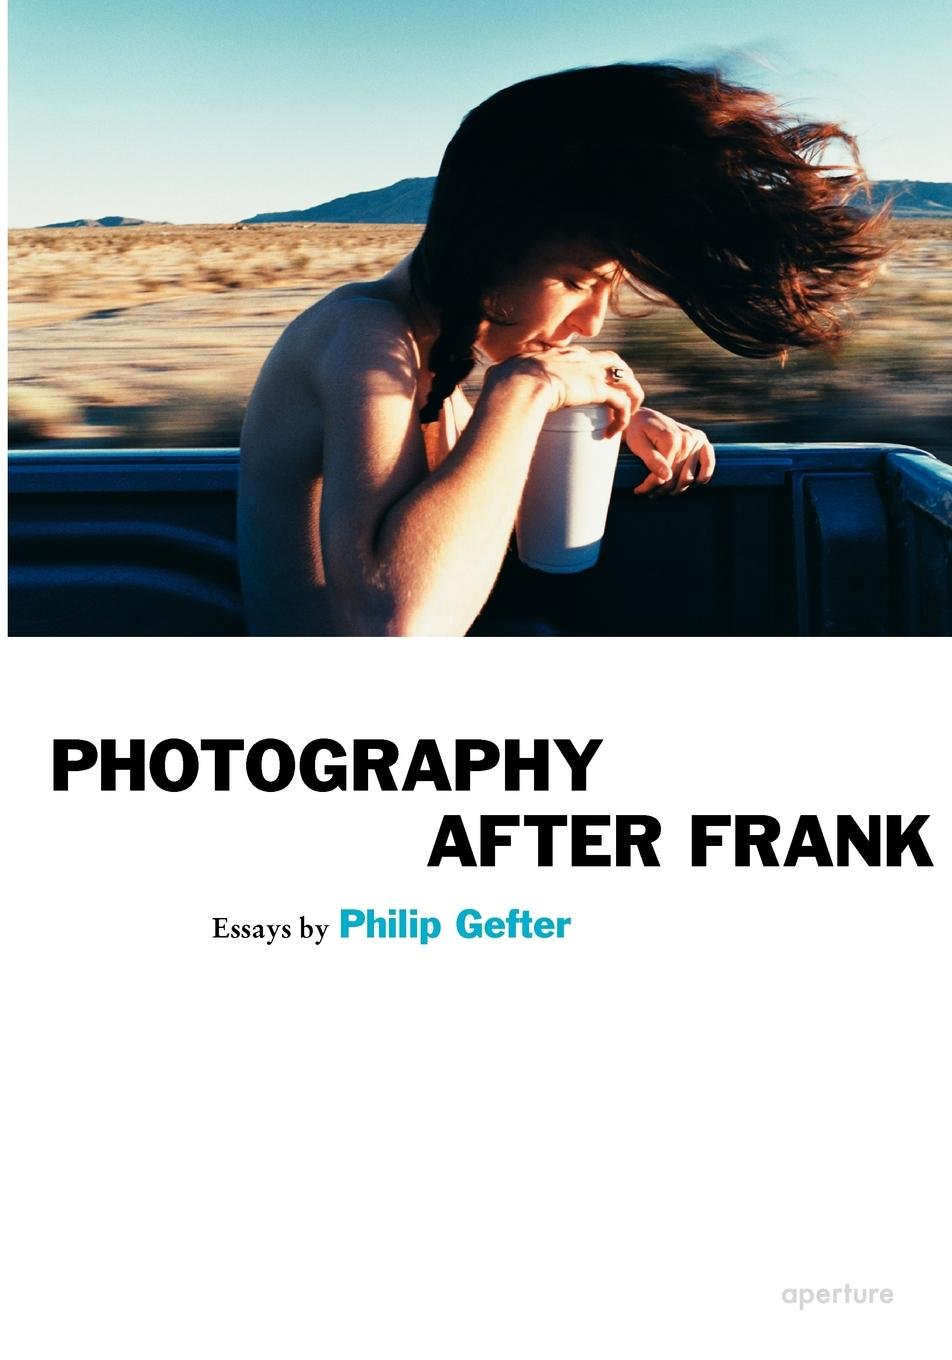 philip gefter photography after frank aperture ideas philip philip gefter photography after frank aperture ideas philip gefter 9781597110952 com books